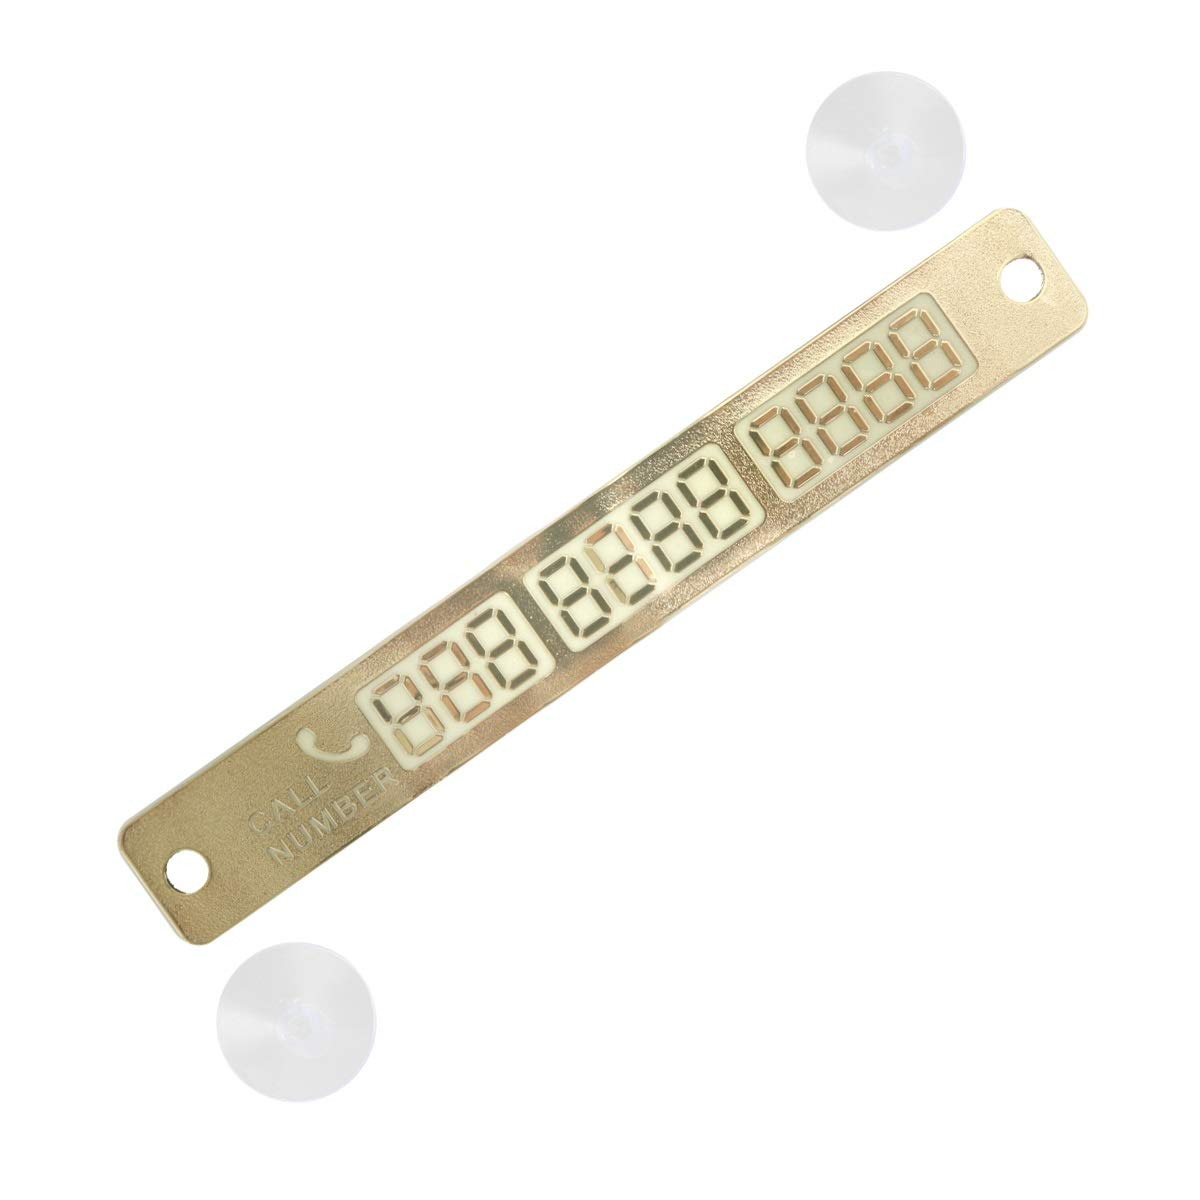 DEALPEAK Luminous Temporary Parking Card Calling Phone Number Sucker Card Plate Car Styling Number Card For Automotive Interior Accessories (Color : Gold)